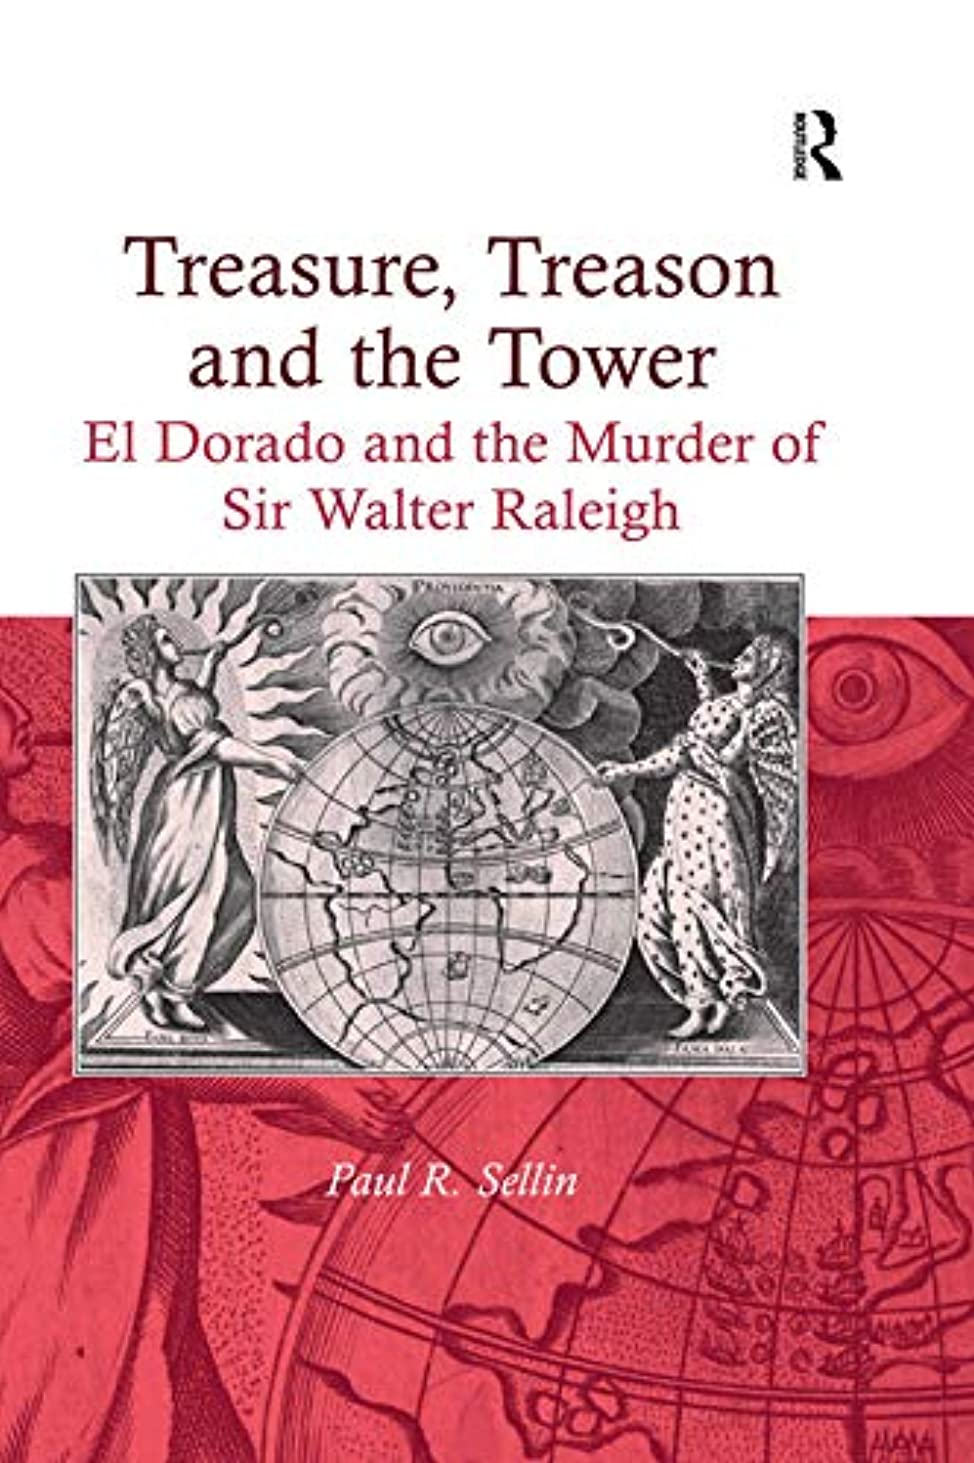 タイプいろいろマルコポーロTreasure, Treason and the Tower: El Dorado and the Murder of Sir Walter Raleigh (English Edition)